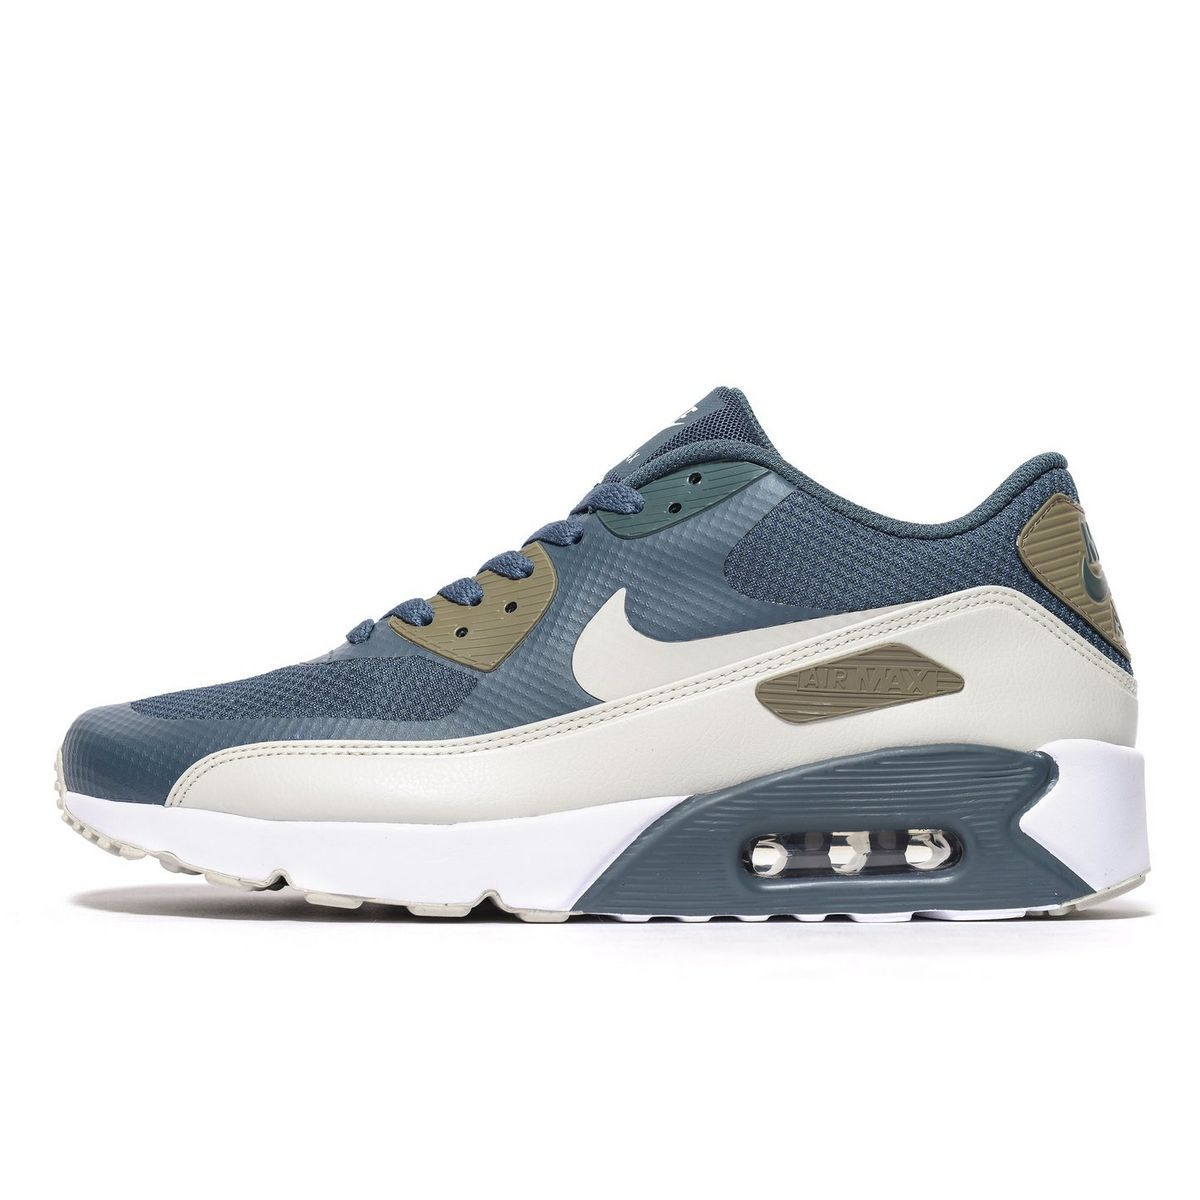 low priced 3bc52 2a093 Nike Air Max 90 Ultra Essential 2.0